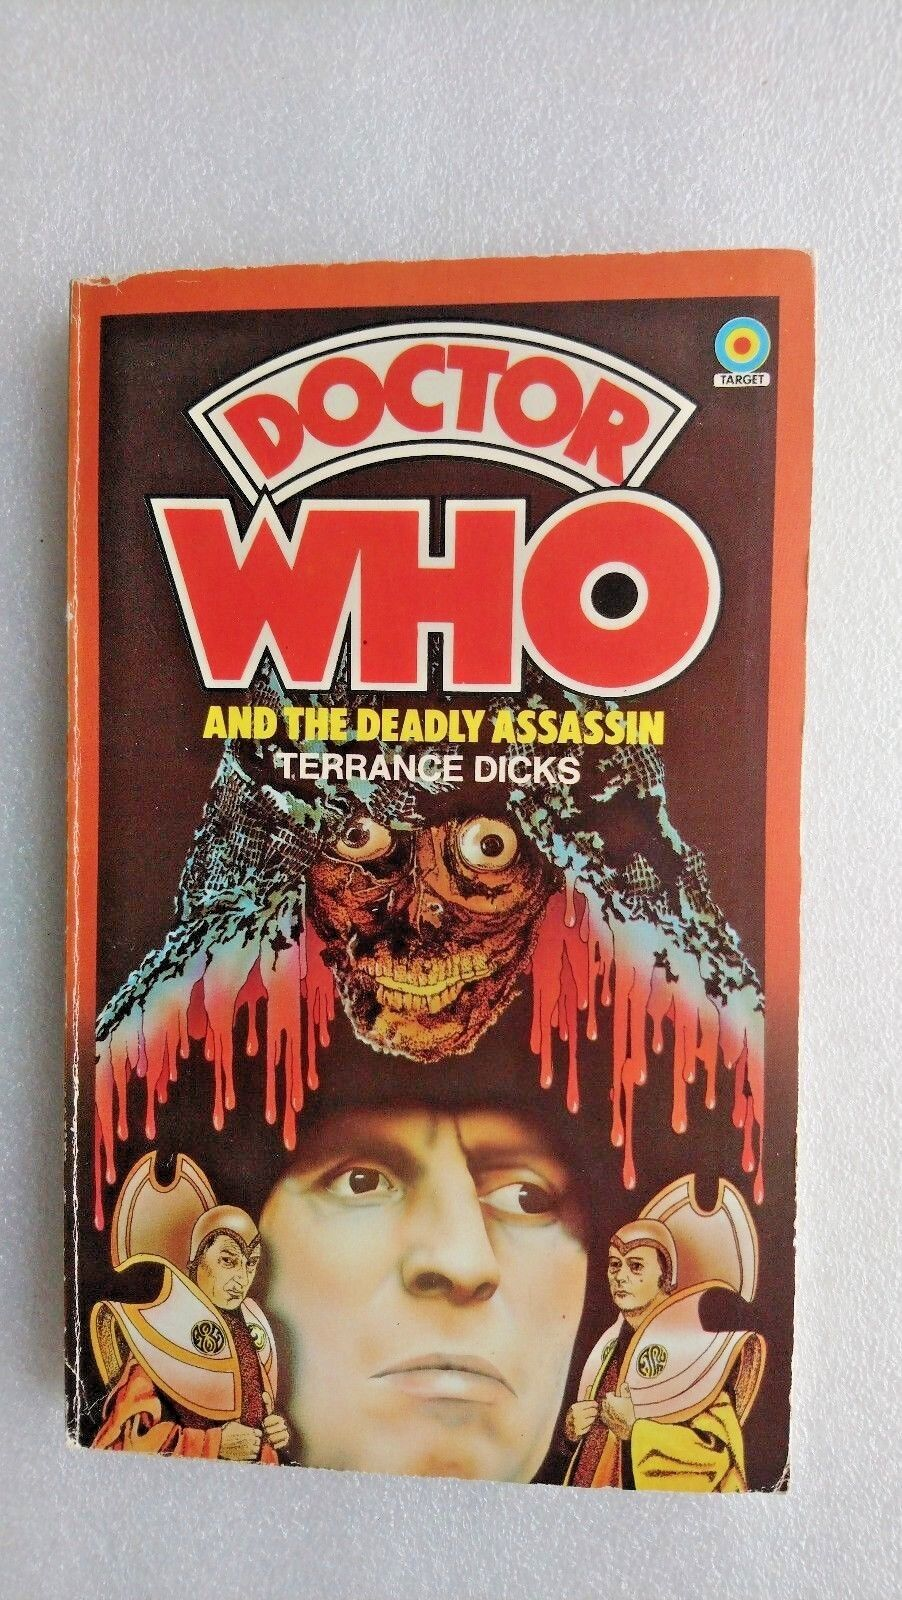 Doctor Who and the Deadly Assassin by Terrance Dicks (Paperback, 1977)